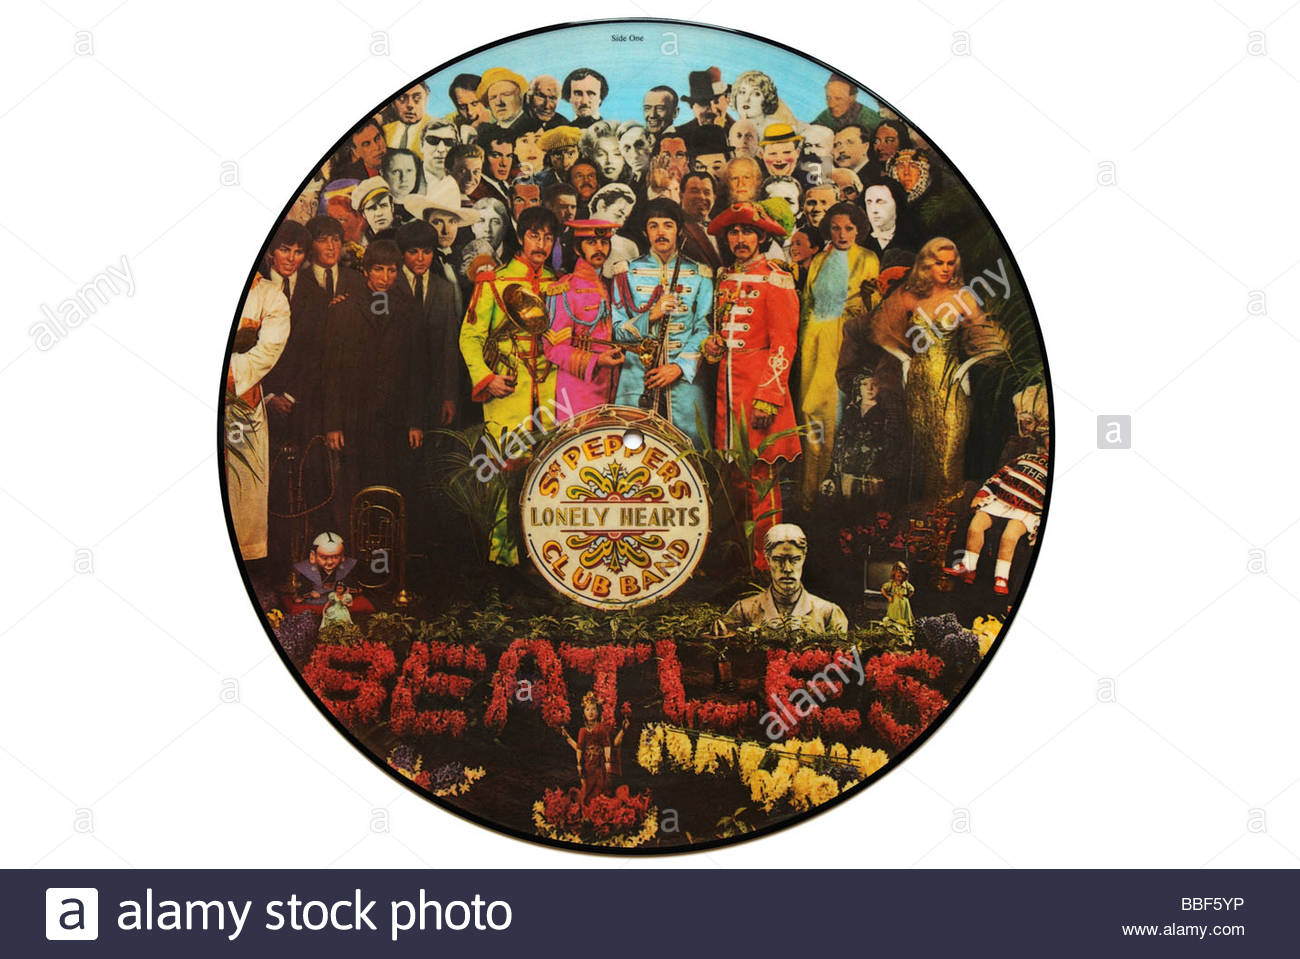 The Beatles Segeant Peppers picture disc album - Stock Image